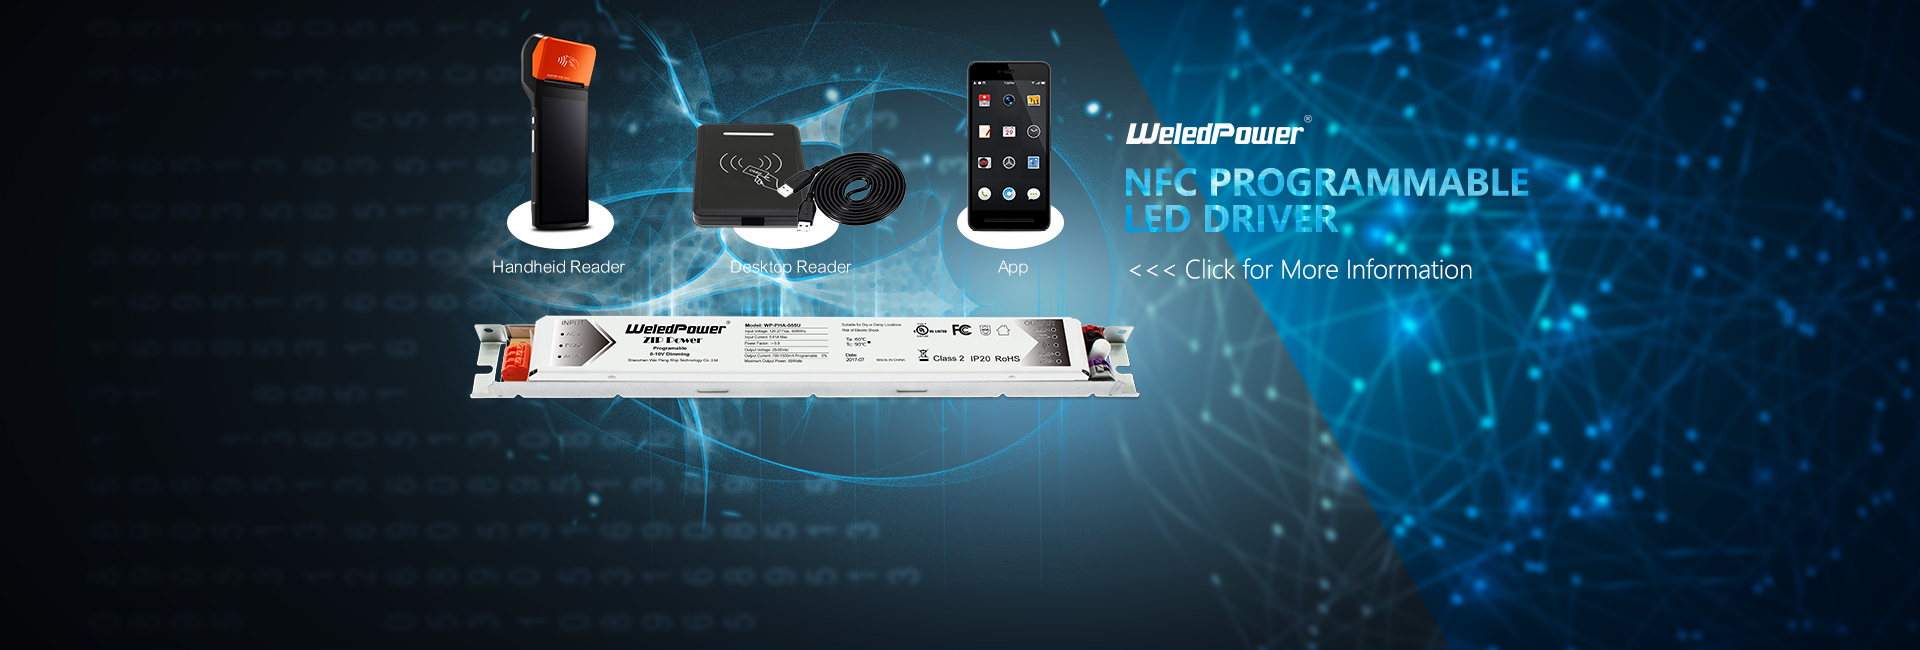 NFC programmable led drivers